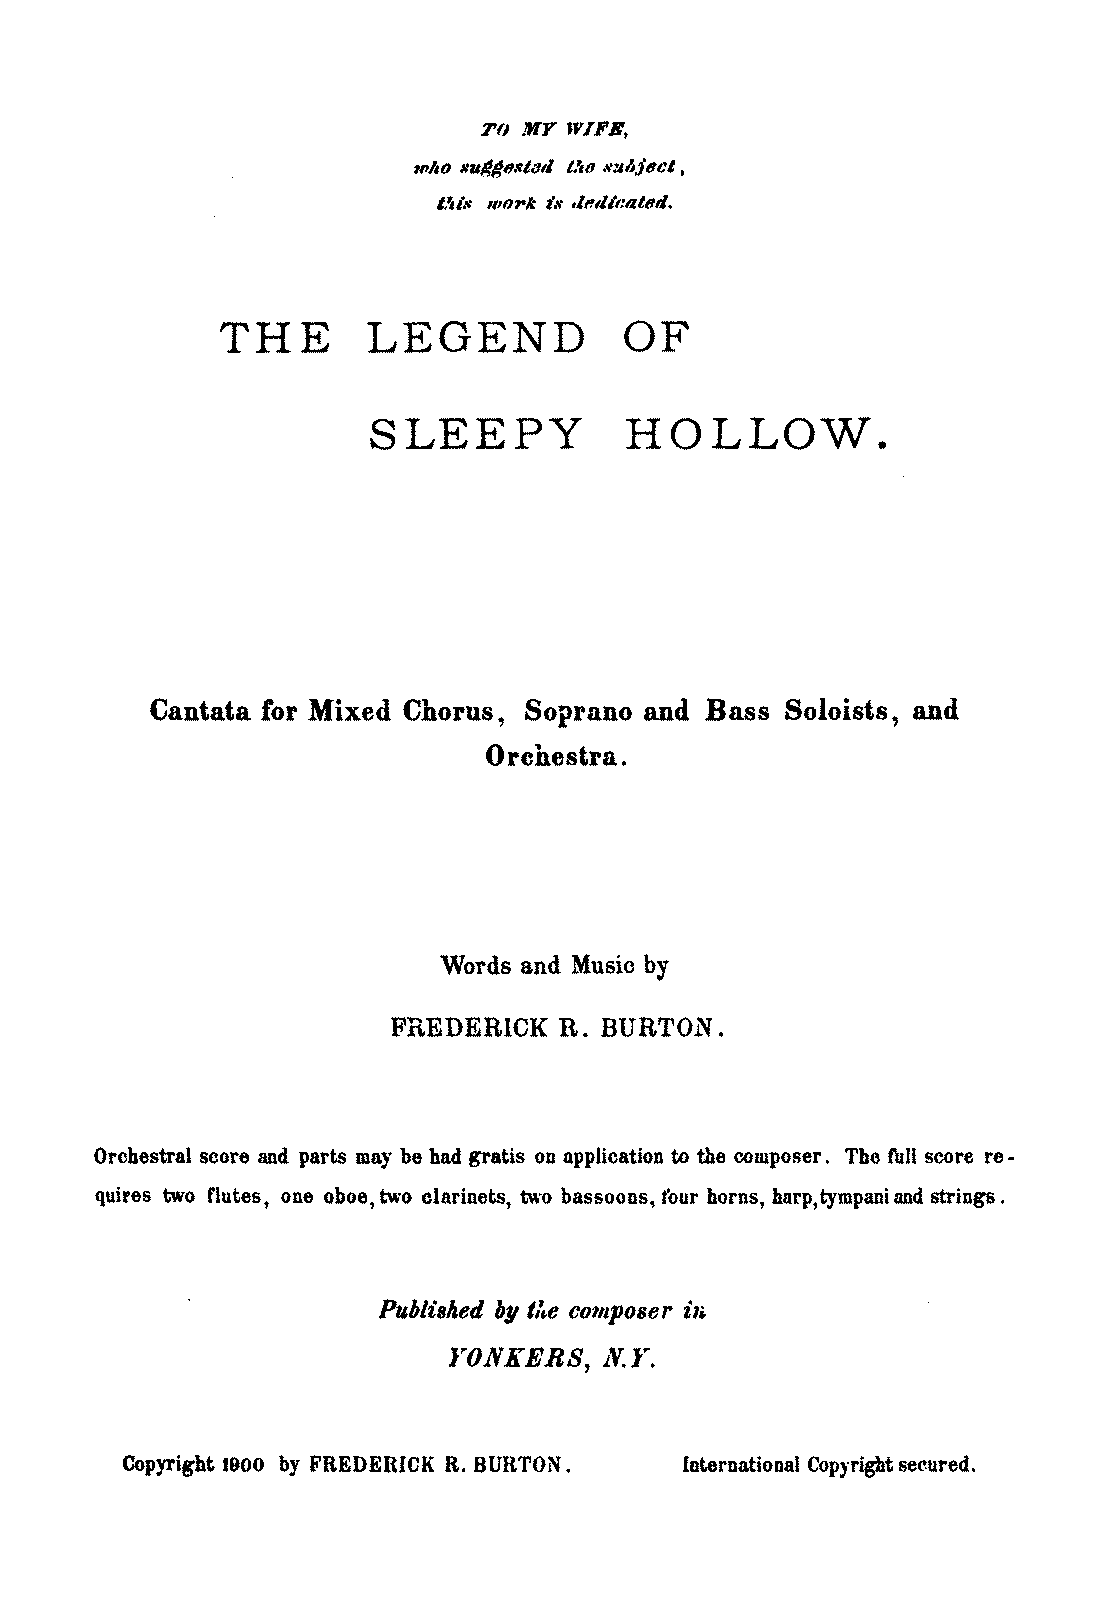 PMLP654427-FRBurton The Legend of Sleepy Hollow vocalscore.pdf